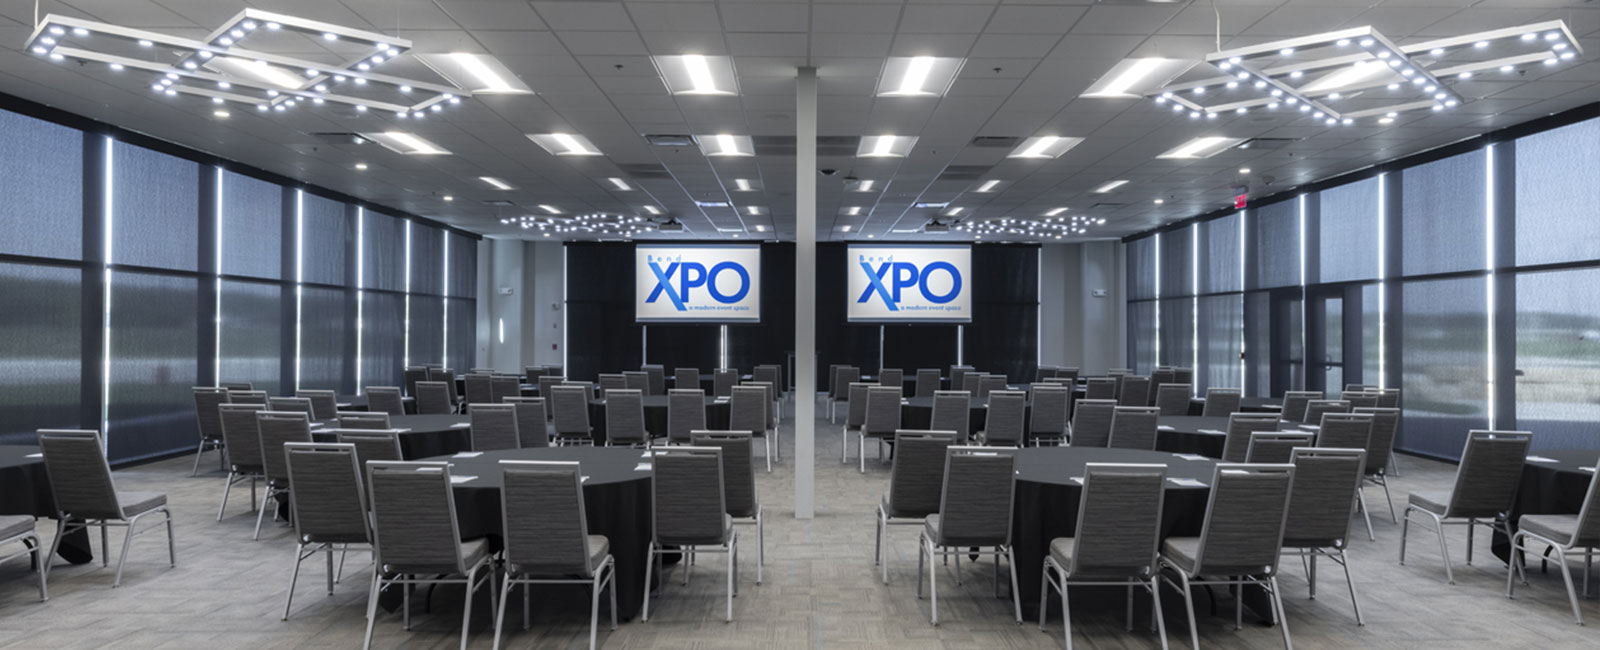 Bend XPO Conference Center